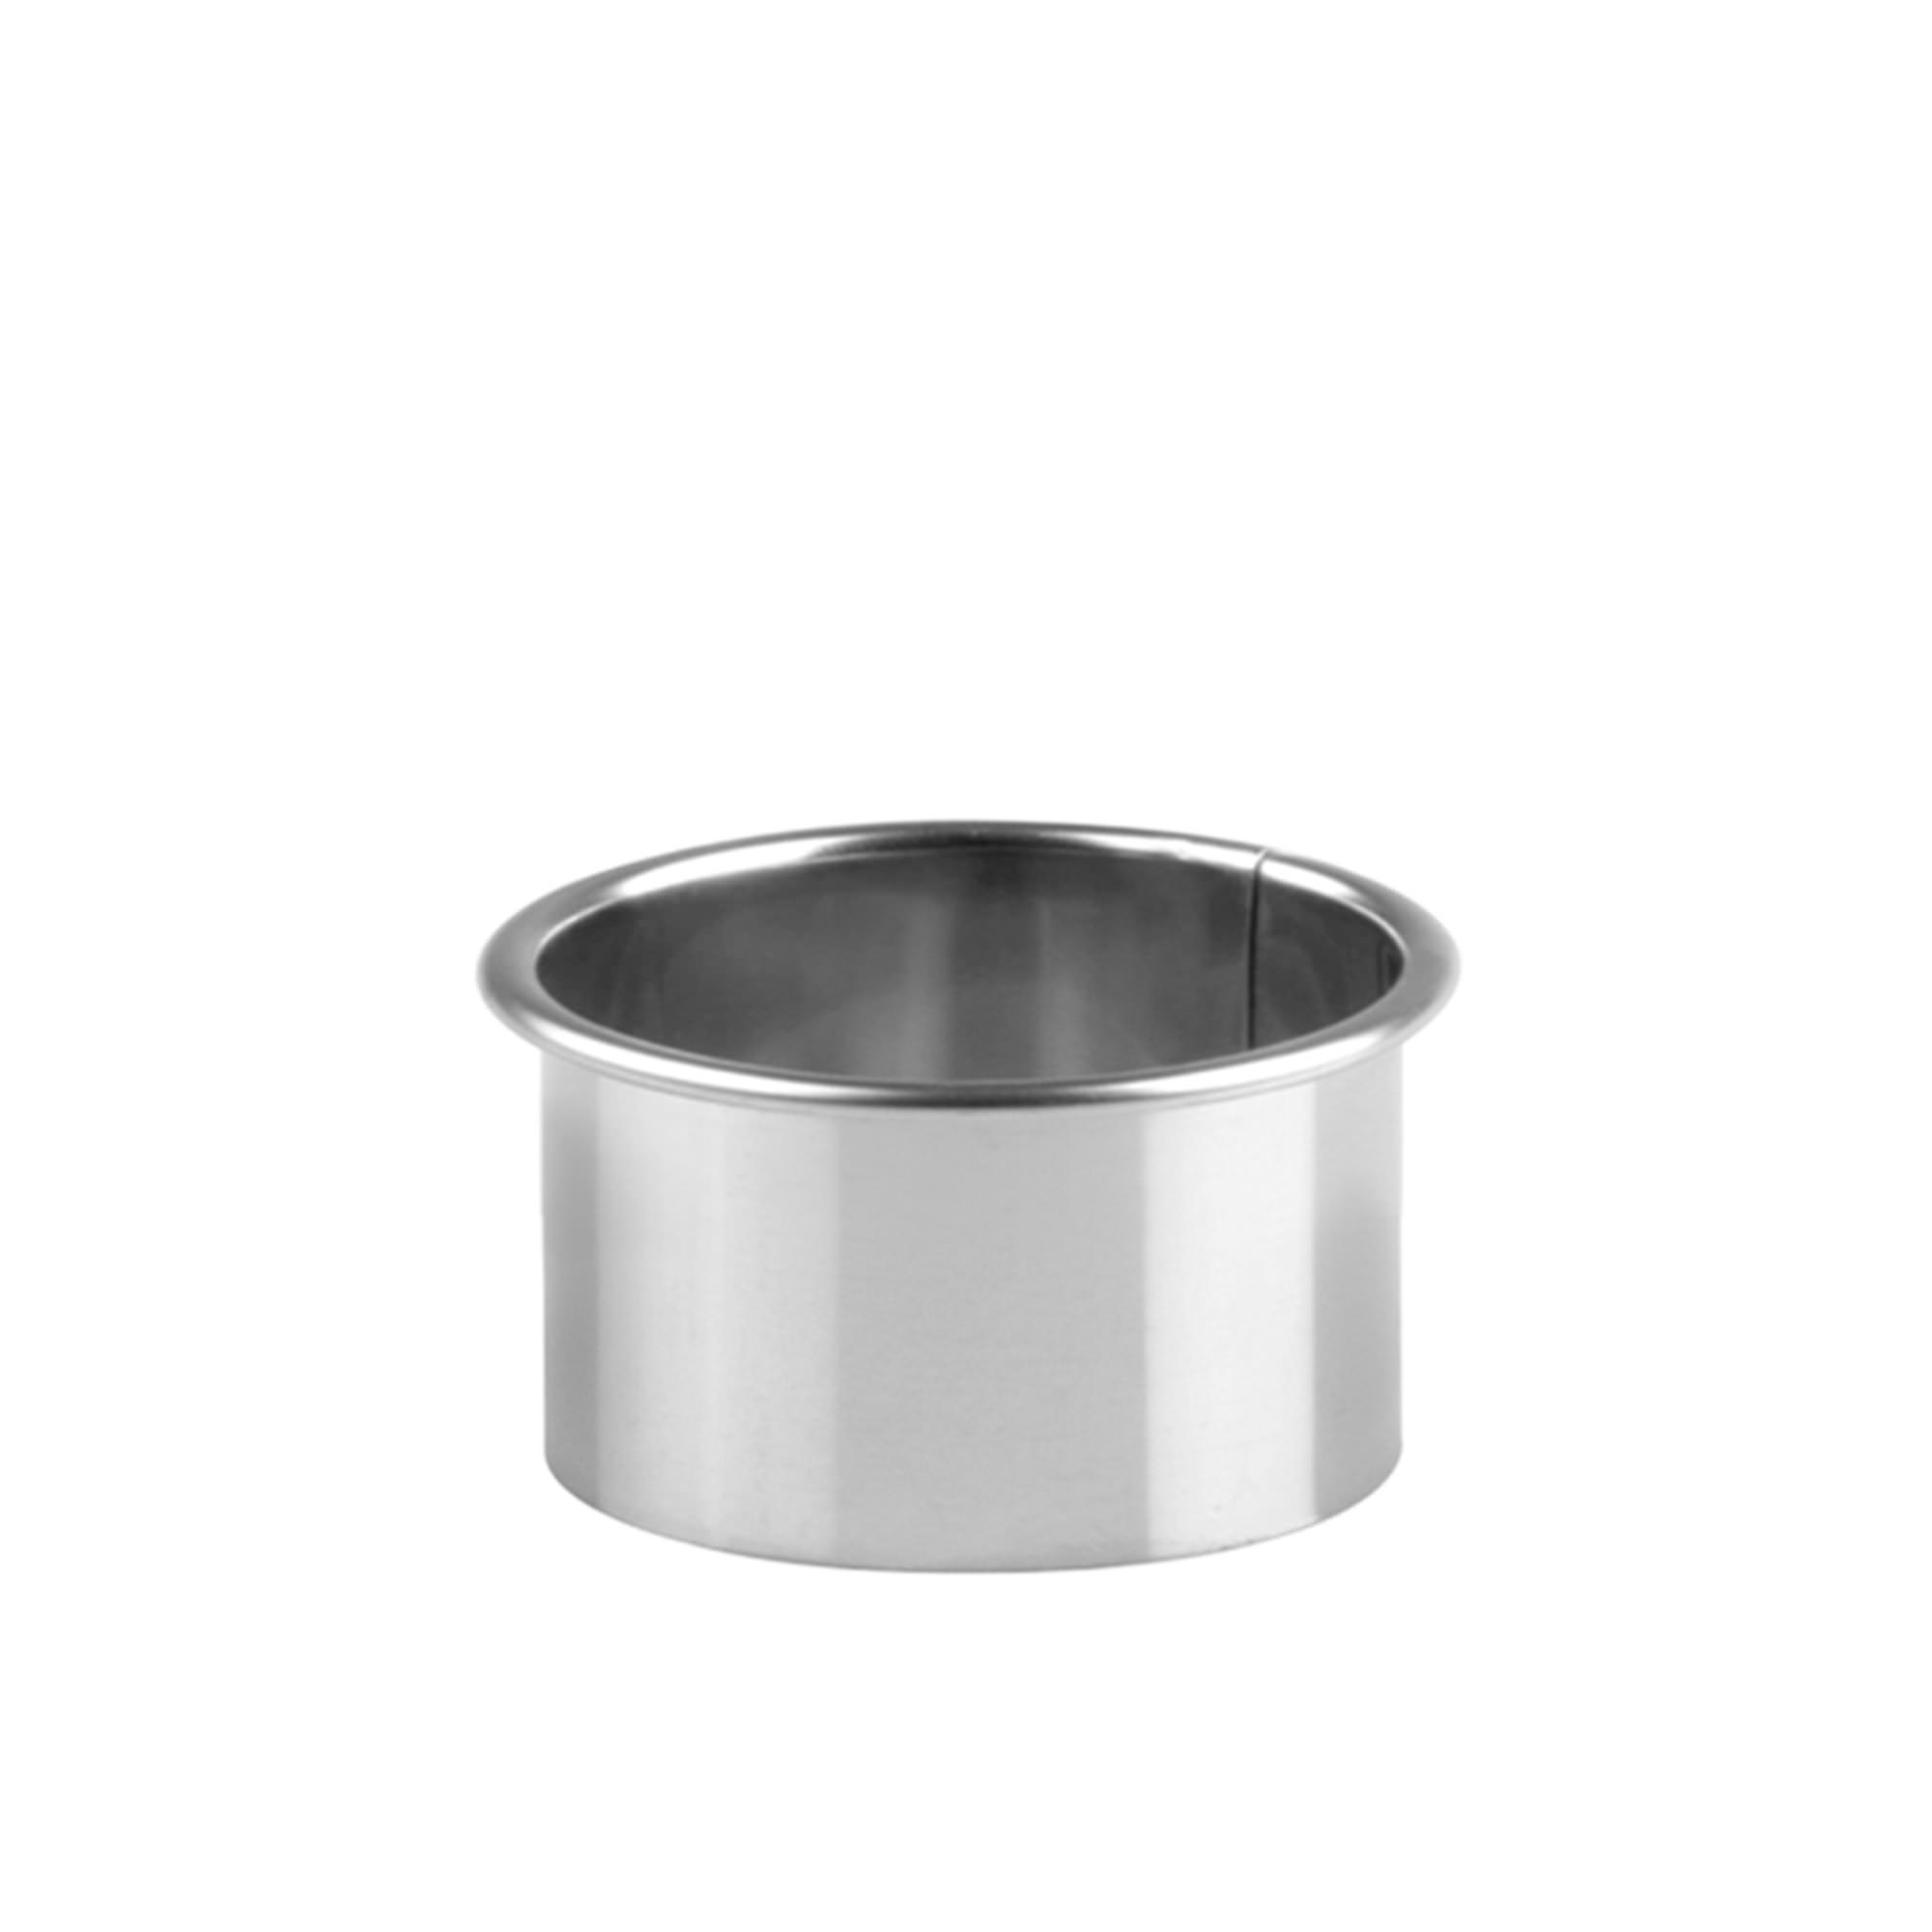 Chef Inox Plain Biscuit Cutter S/S 9cm